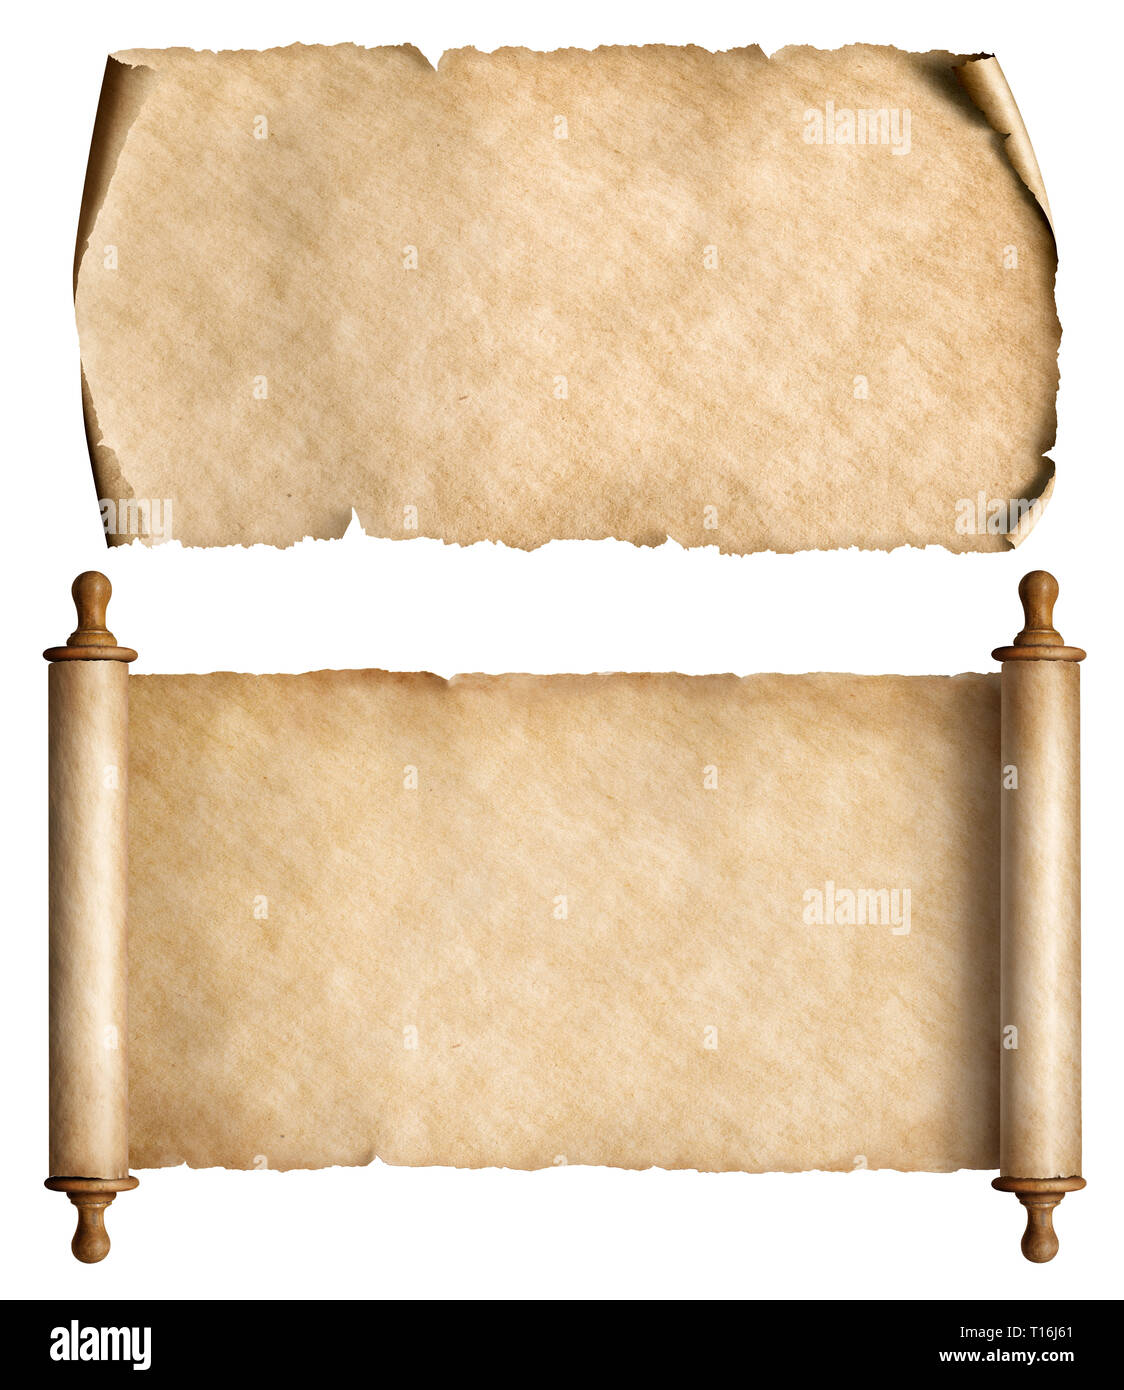 Vintage paper or parchment scrolls set isolated on white - Stock Image